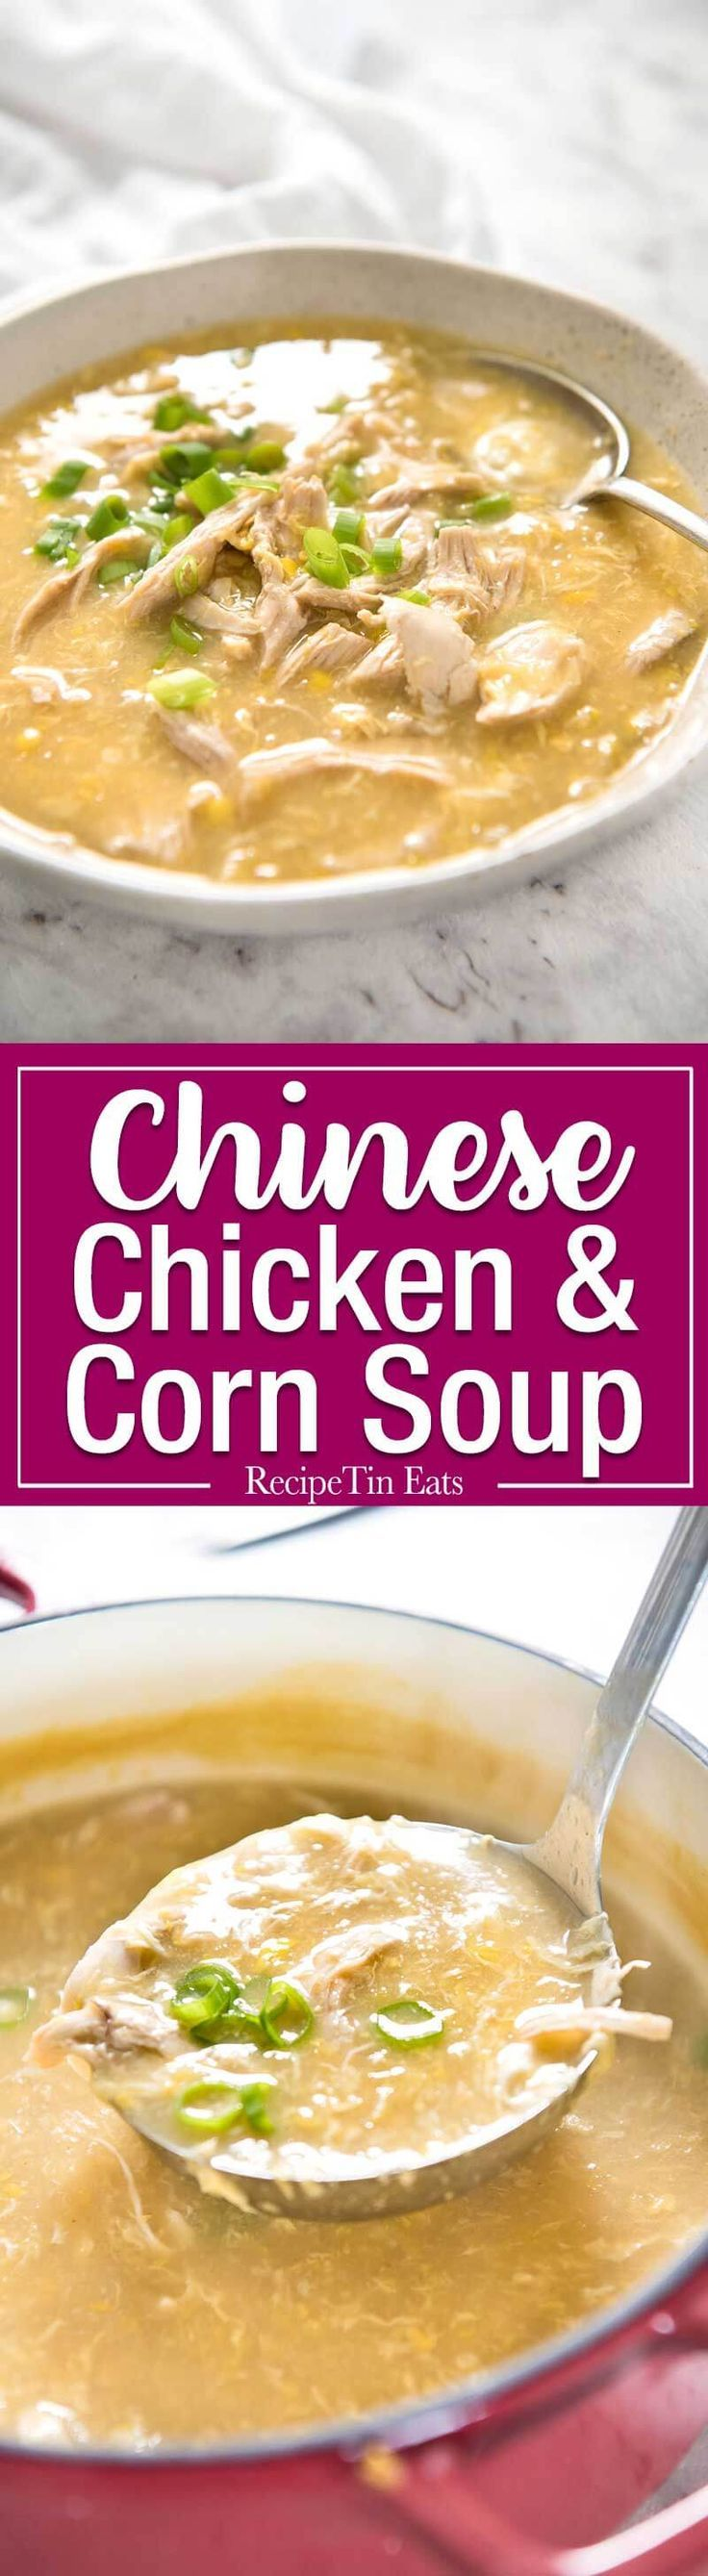 This Chinese Corn Soup with Chicken takes just 15 minutes to make - with no chopping! It's just like what you get at Chinese restaurants! http://www.recipetineats.com